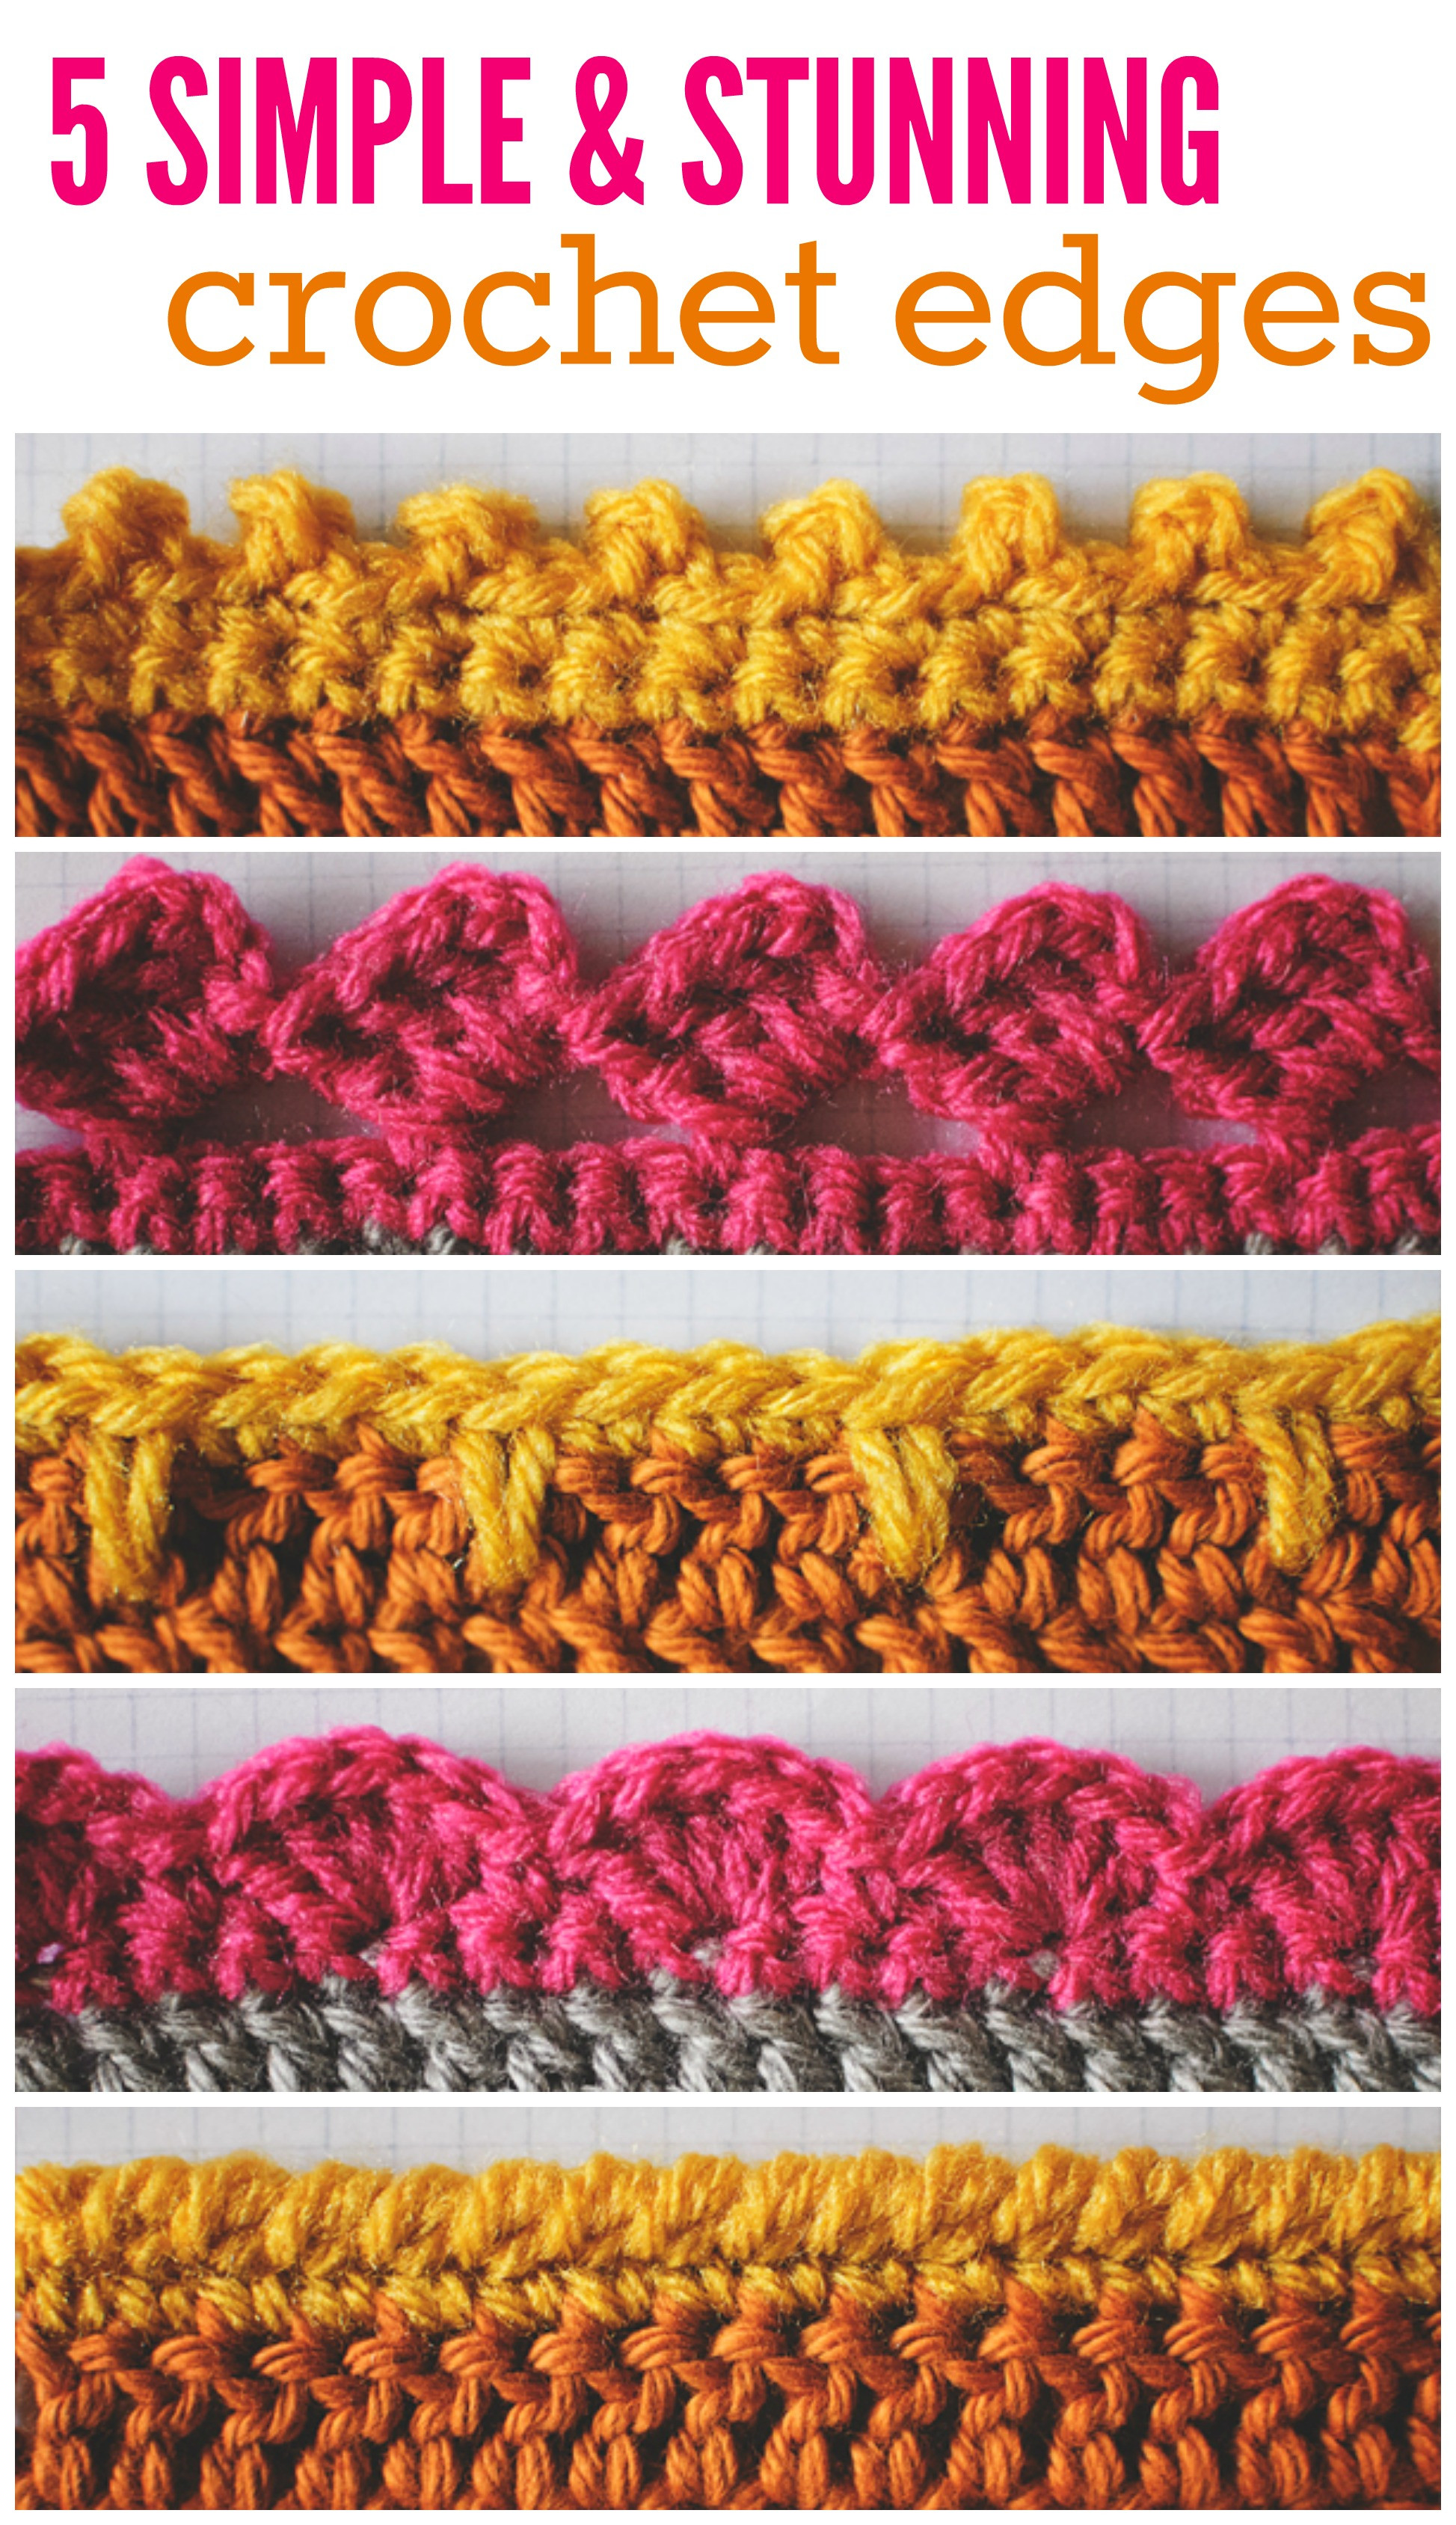 Crochet Edging Inspirational Finishing 5 Crochet Edges You Should Know Of Beautiful 50 Pictures Crochet Edging